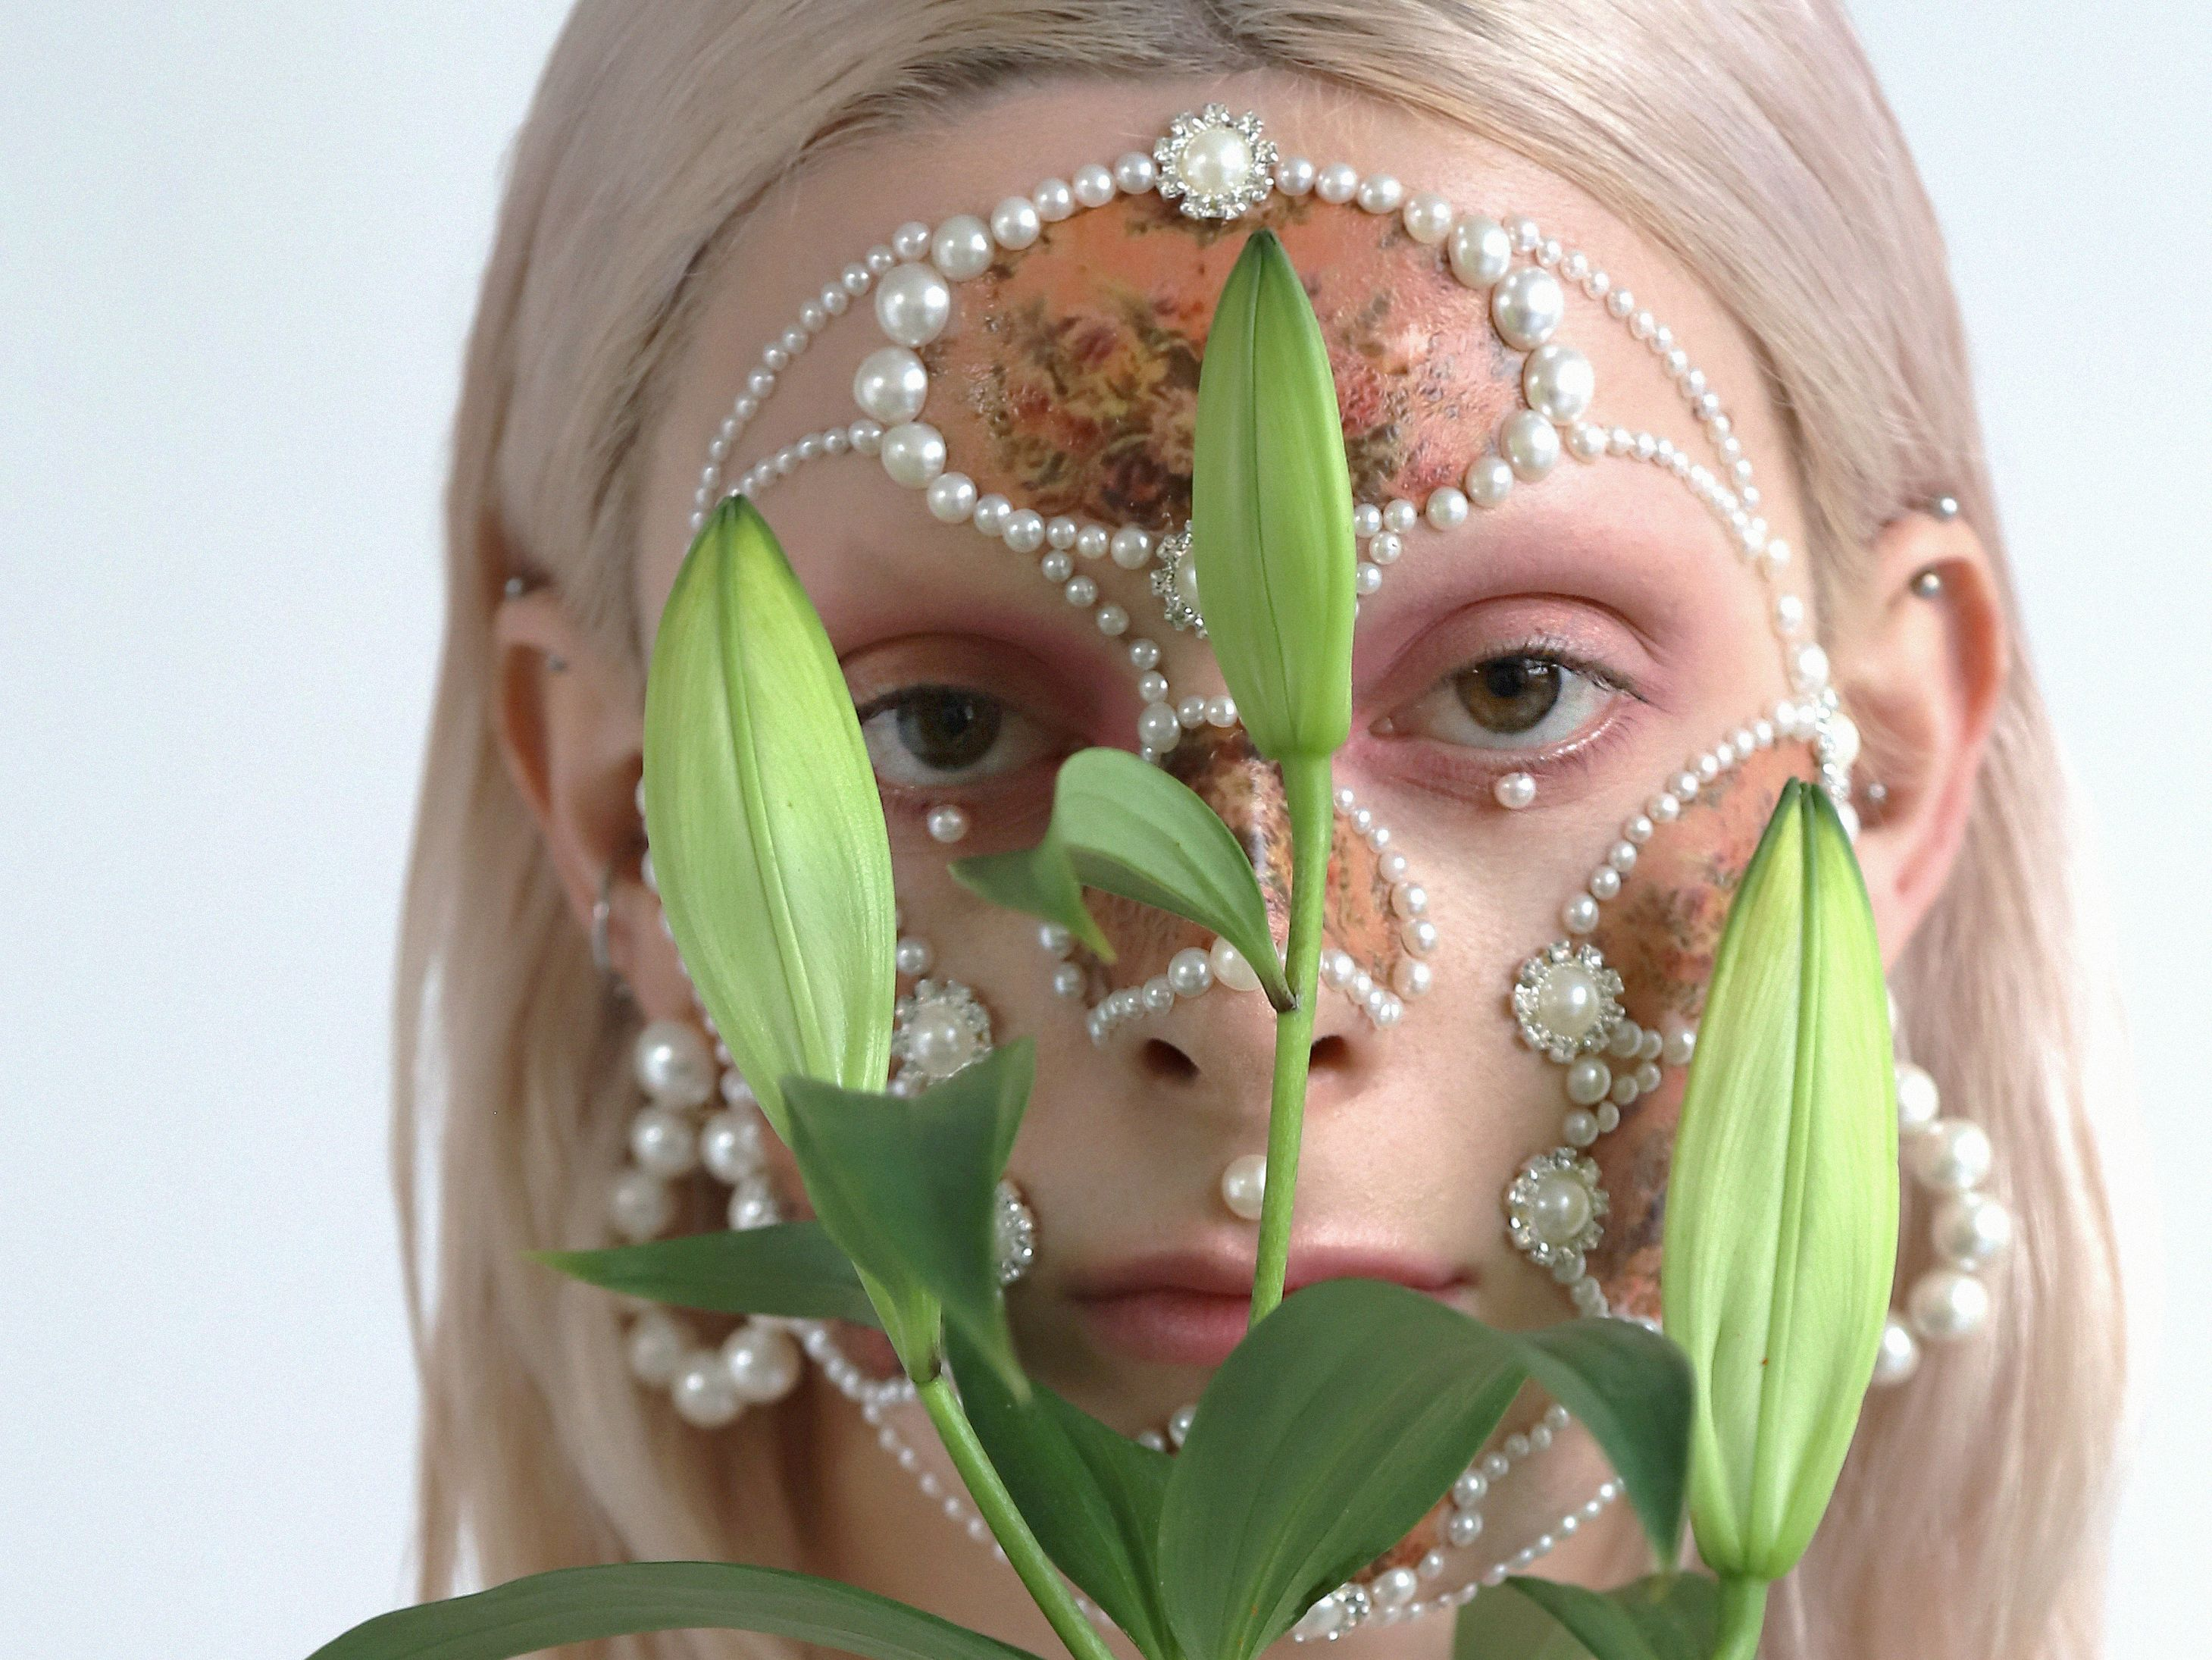 Female model with pearl facial jewellery, makeup and lillies.